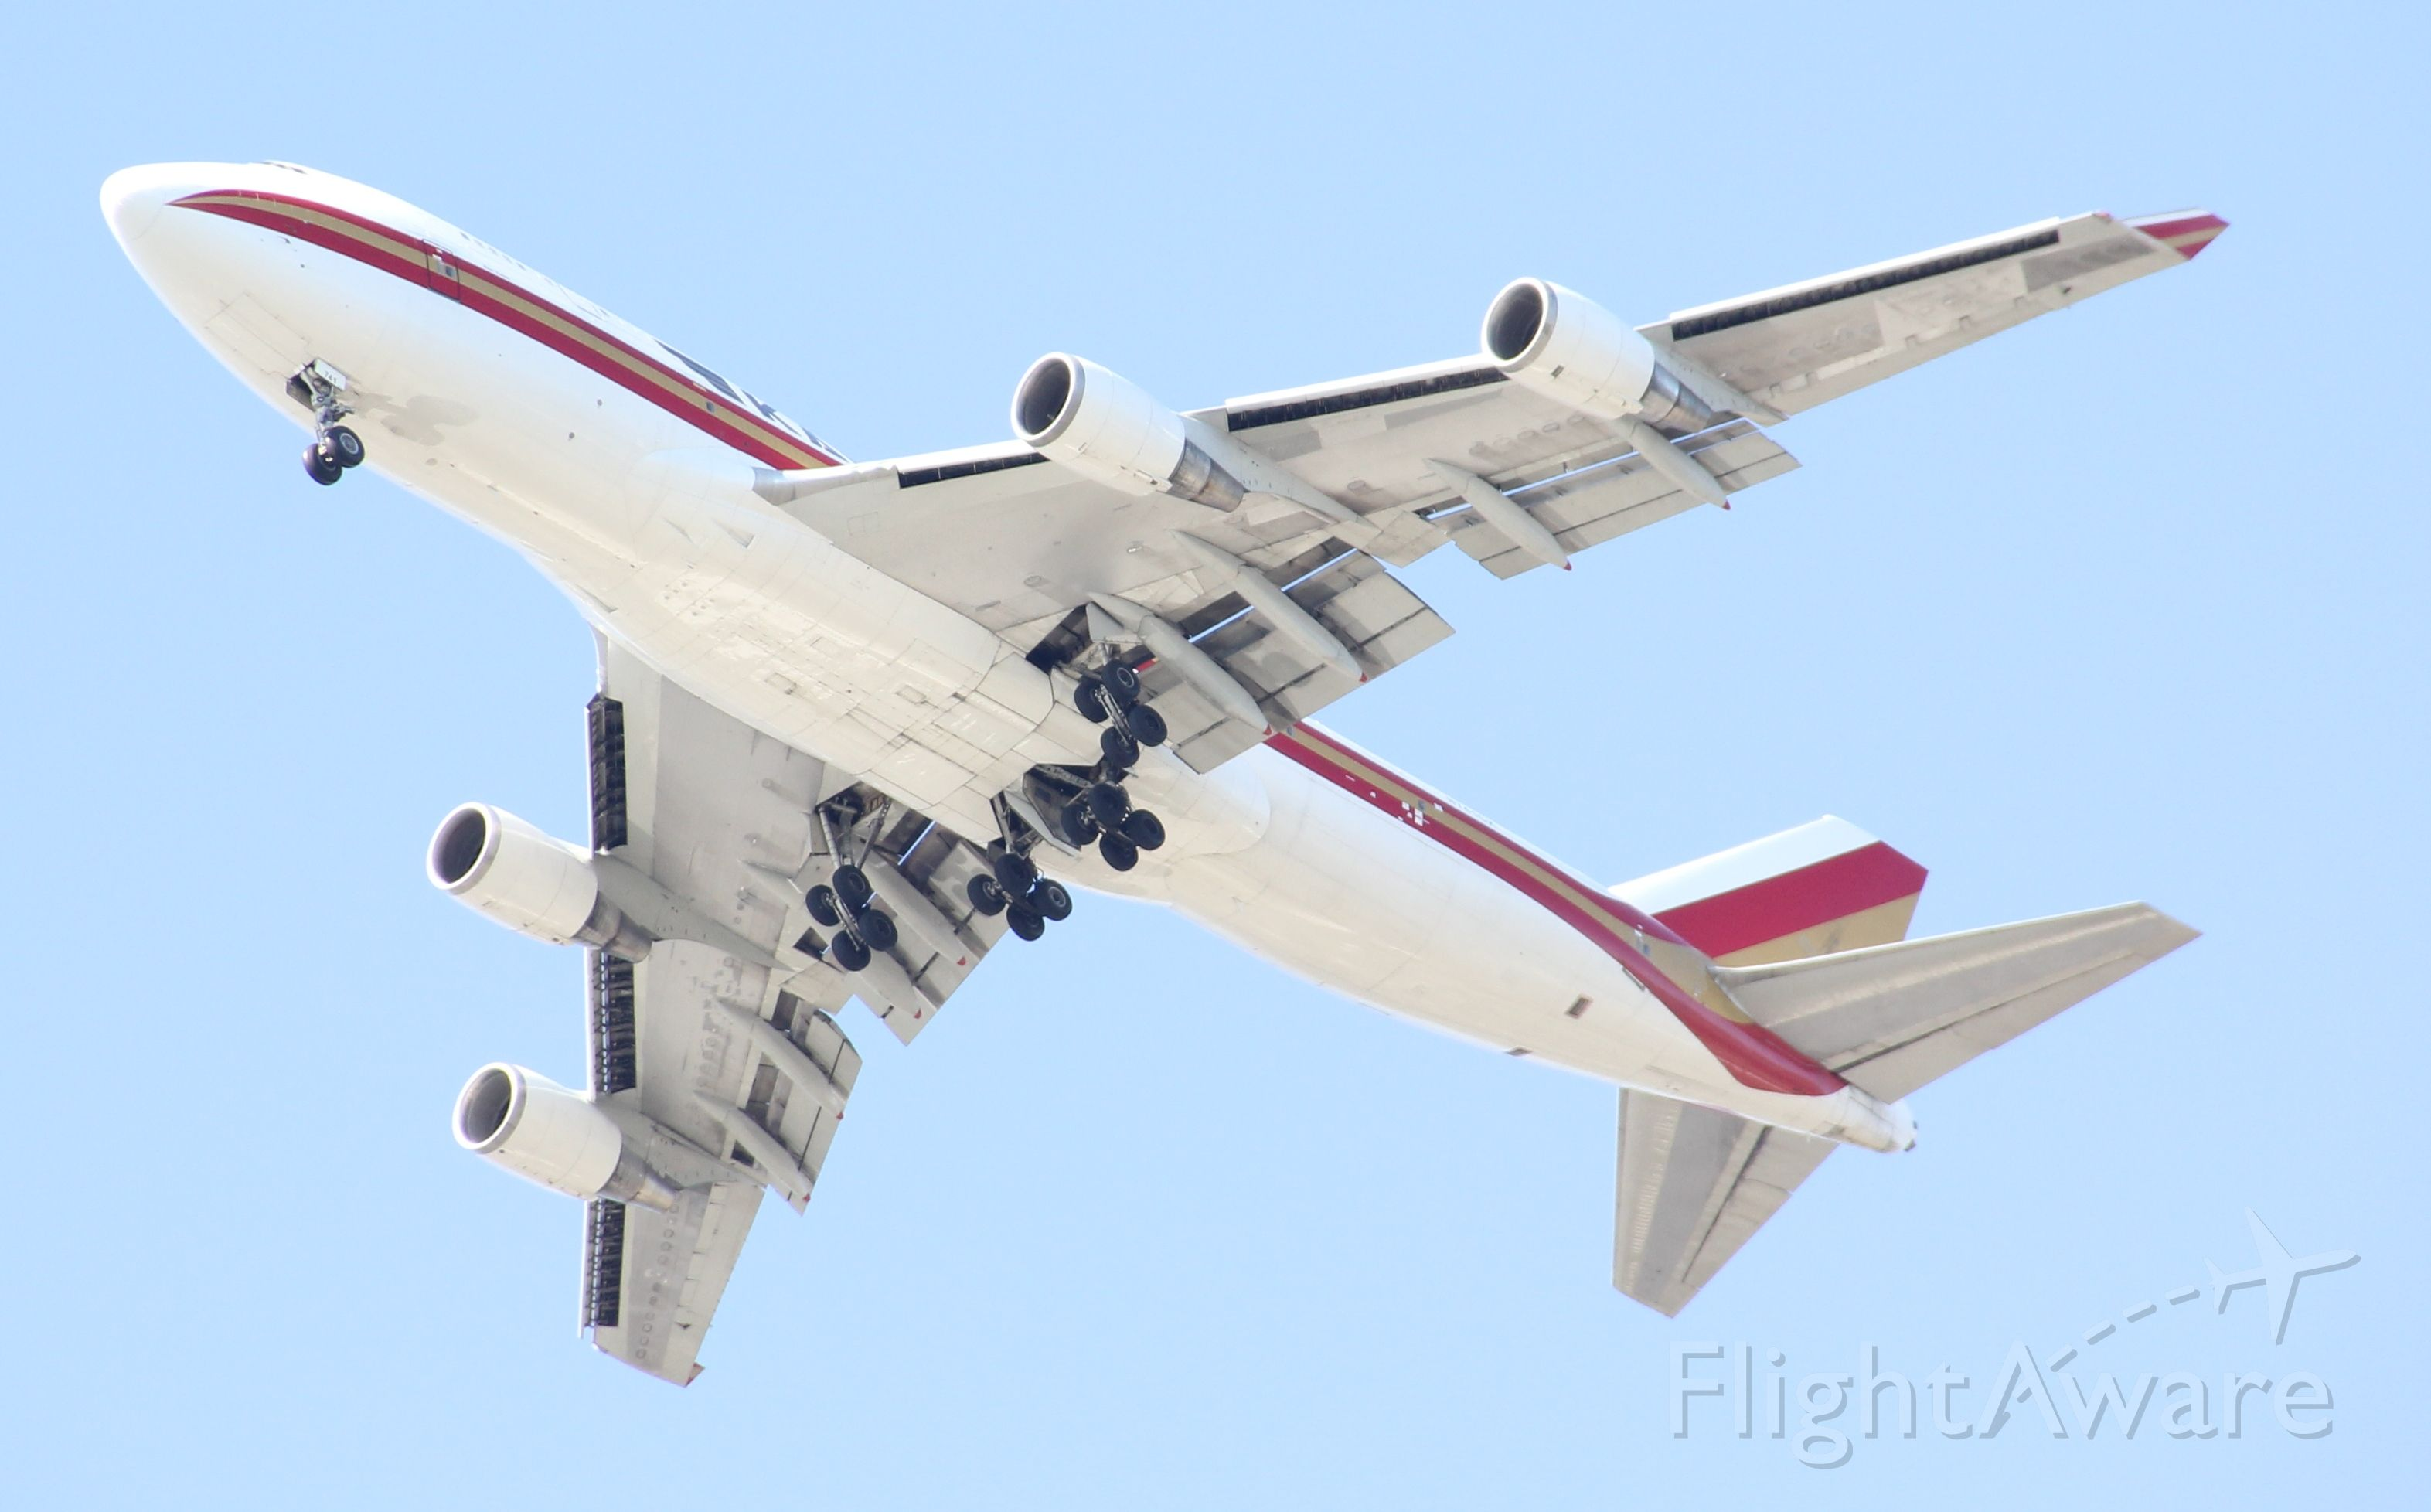 Boeing 747-400 (N741CK) - Finally got a 747 going over my house. Most of the big birds land on the eastern most runway which doesn't come over me. Taken on Nov 30 2019. Love living in the approach to Orlando International.